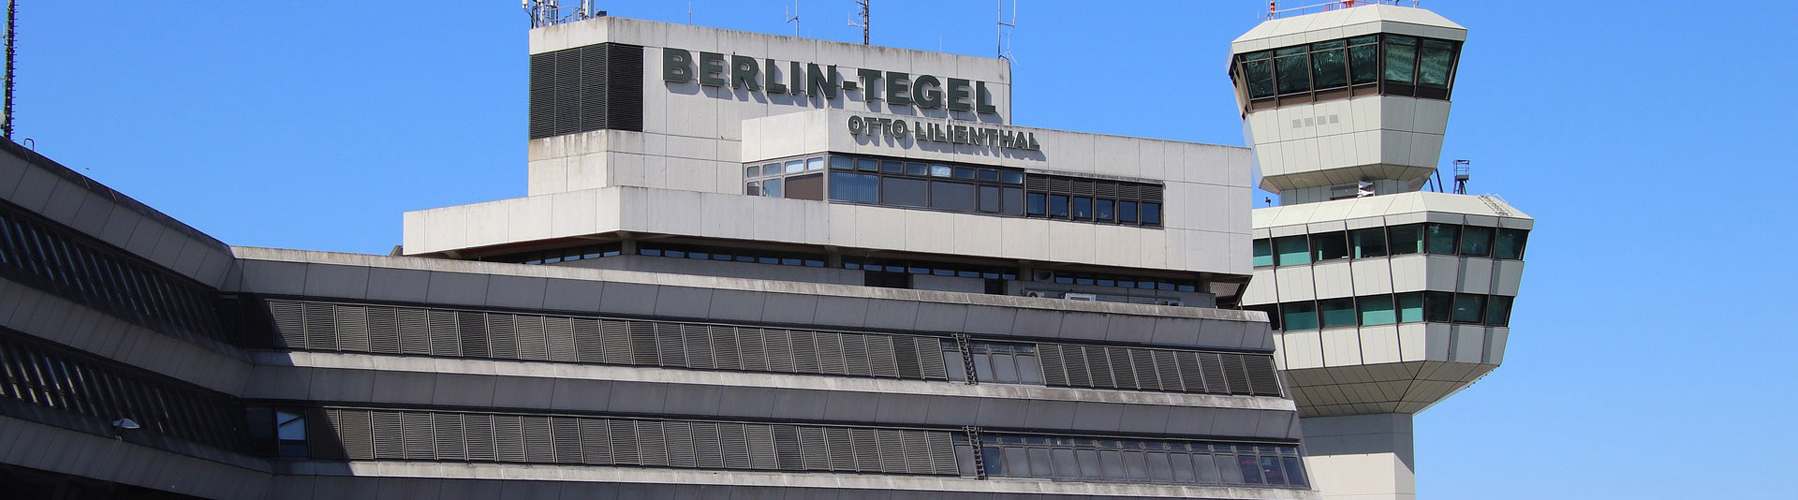 Berlin – Cheap Rooms close to Berlin Tegel Airport. Maps of Berlin, Photos and Reviews for each cheap room in Berlin.